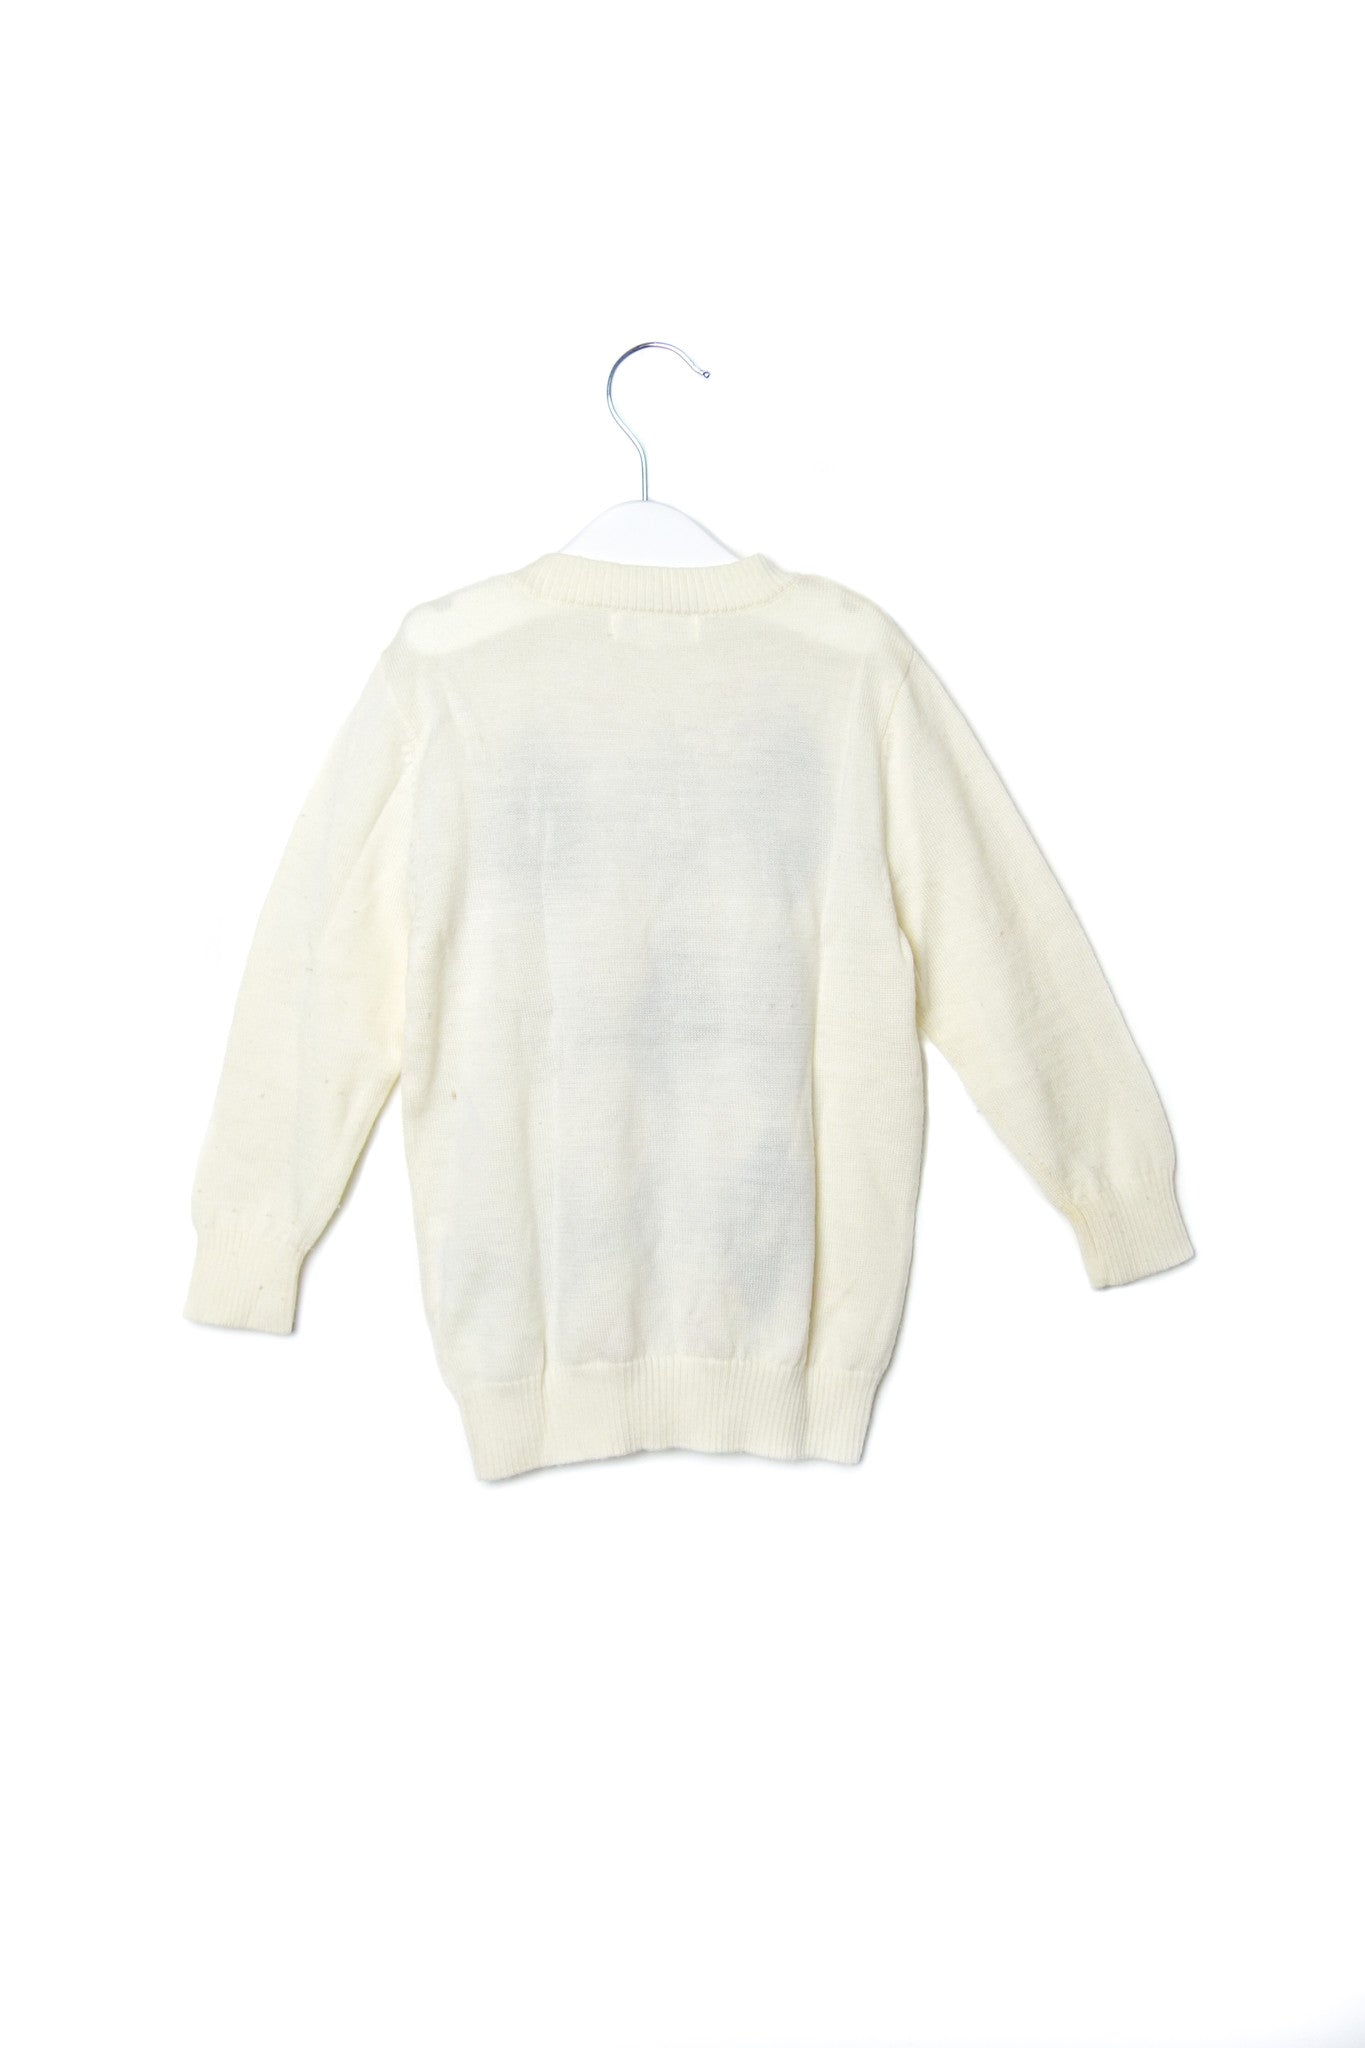 10001818 Nicholas & Bears Kids~Sweater 2T at Retykle